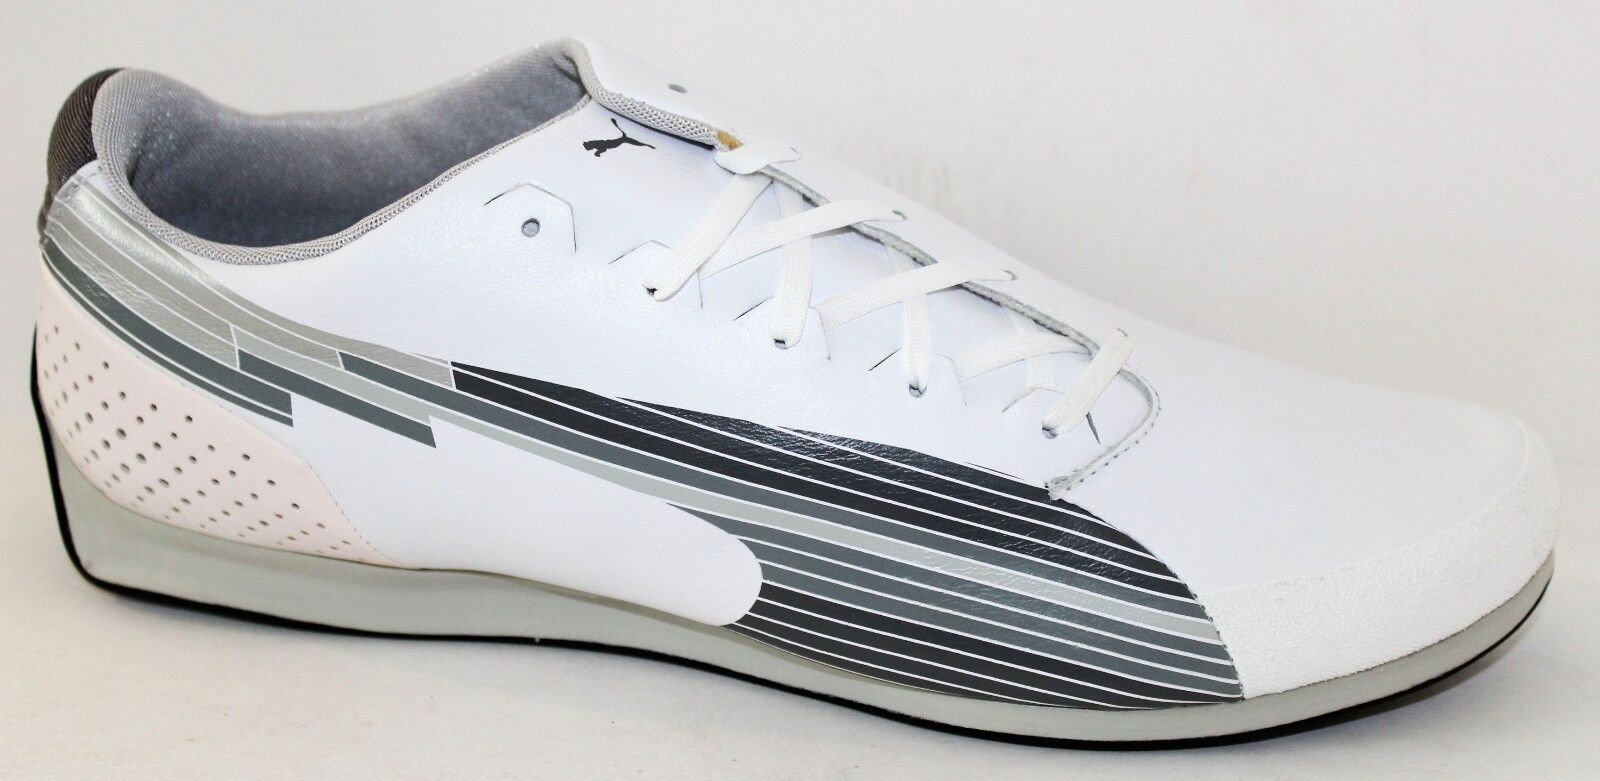 Puma evoSPEED Low 304174-02 White Leather Mens Athletic shoes NWD Size 8.5 - 13